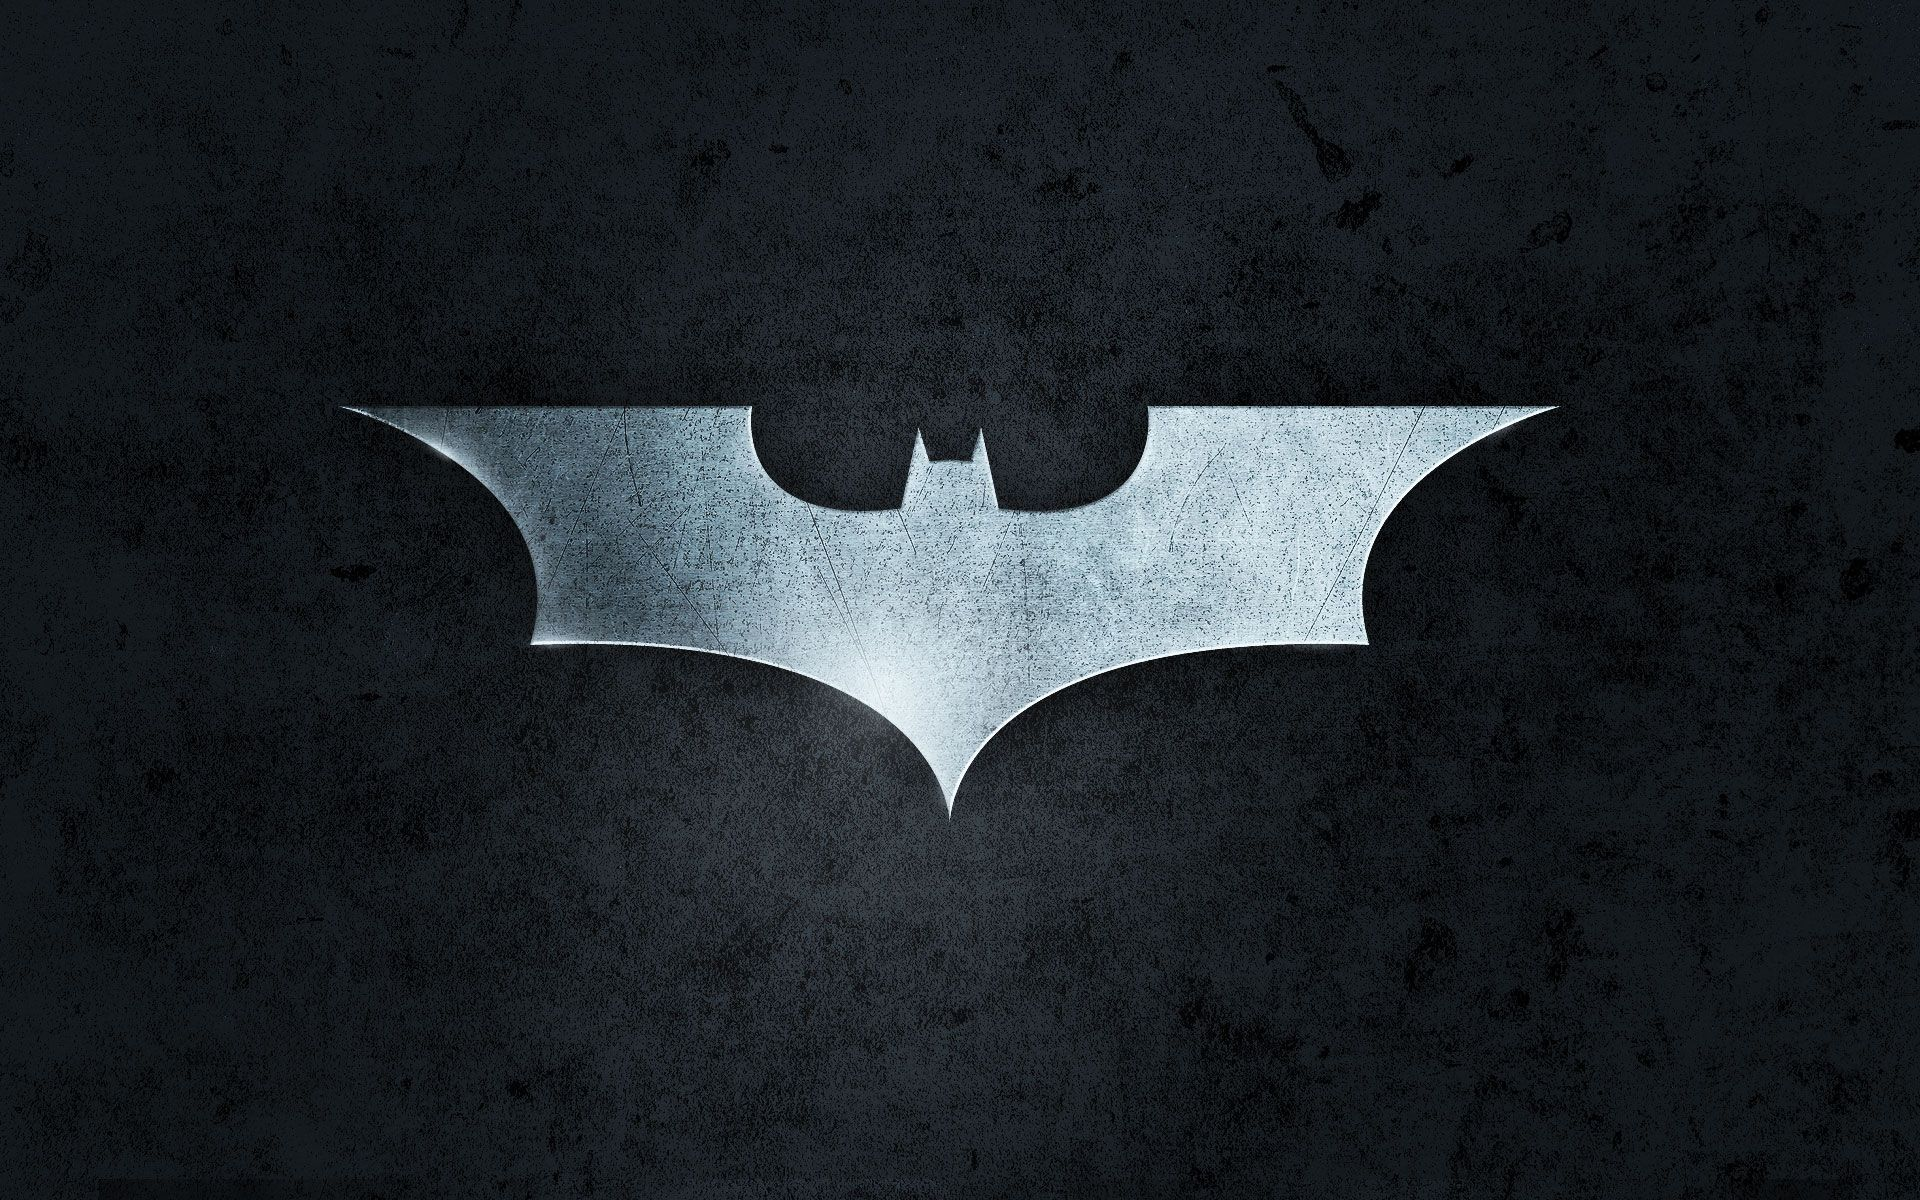 Download free batman logo wallpapers for your mobile phone